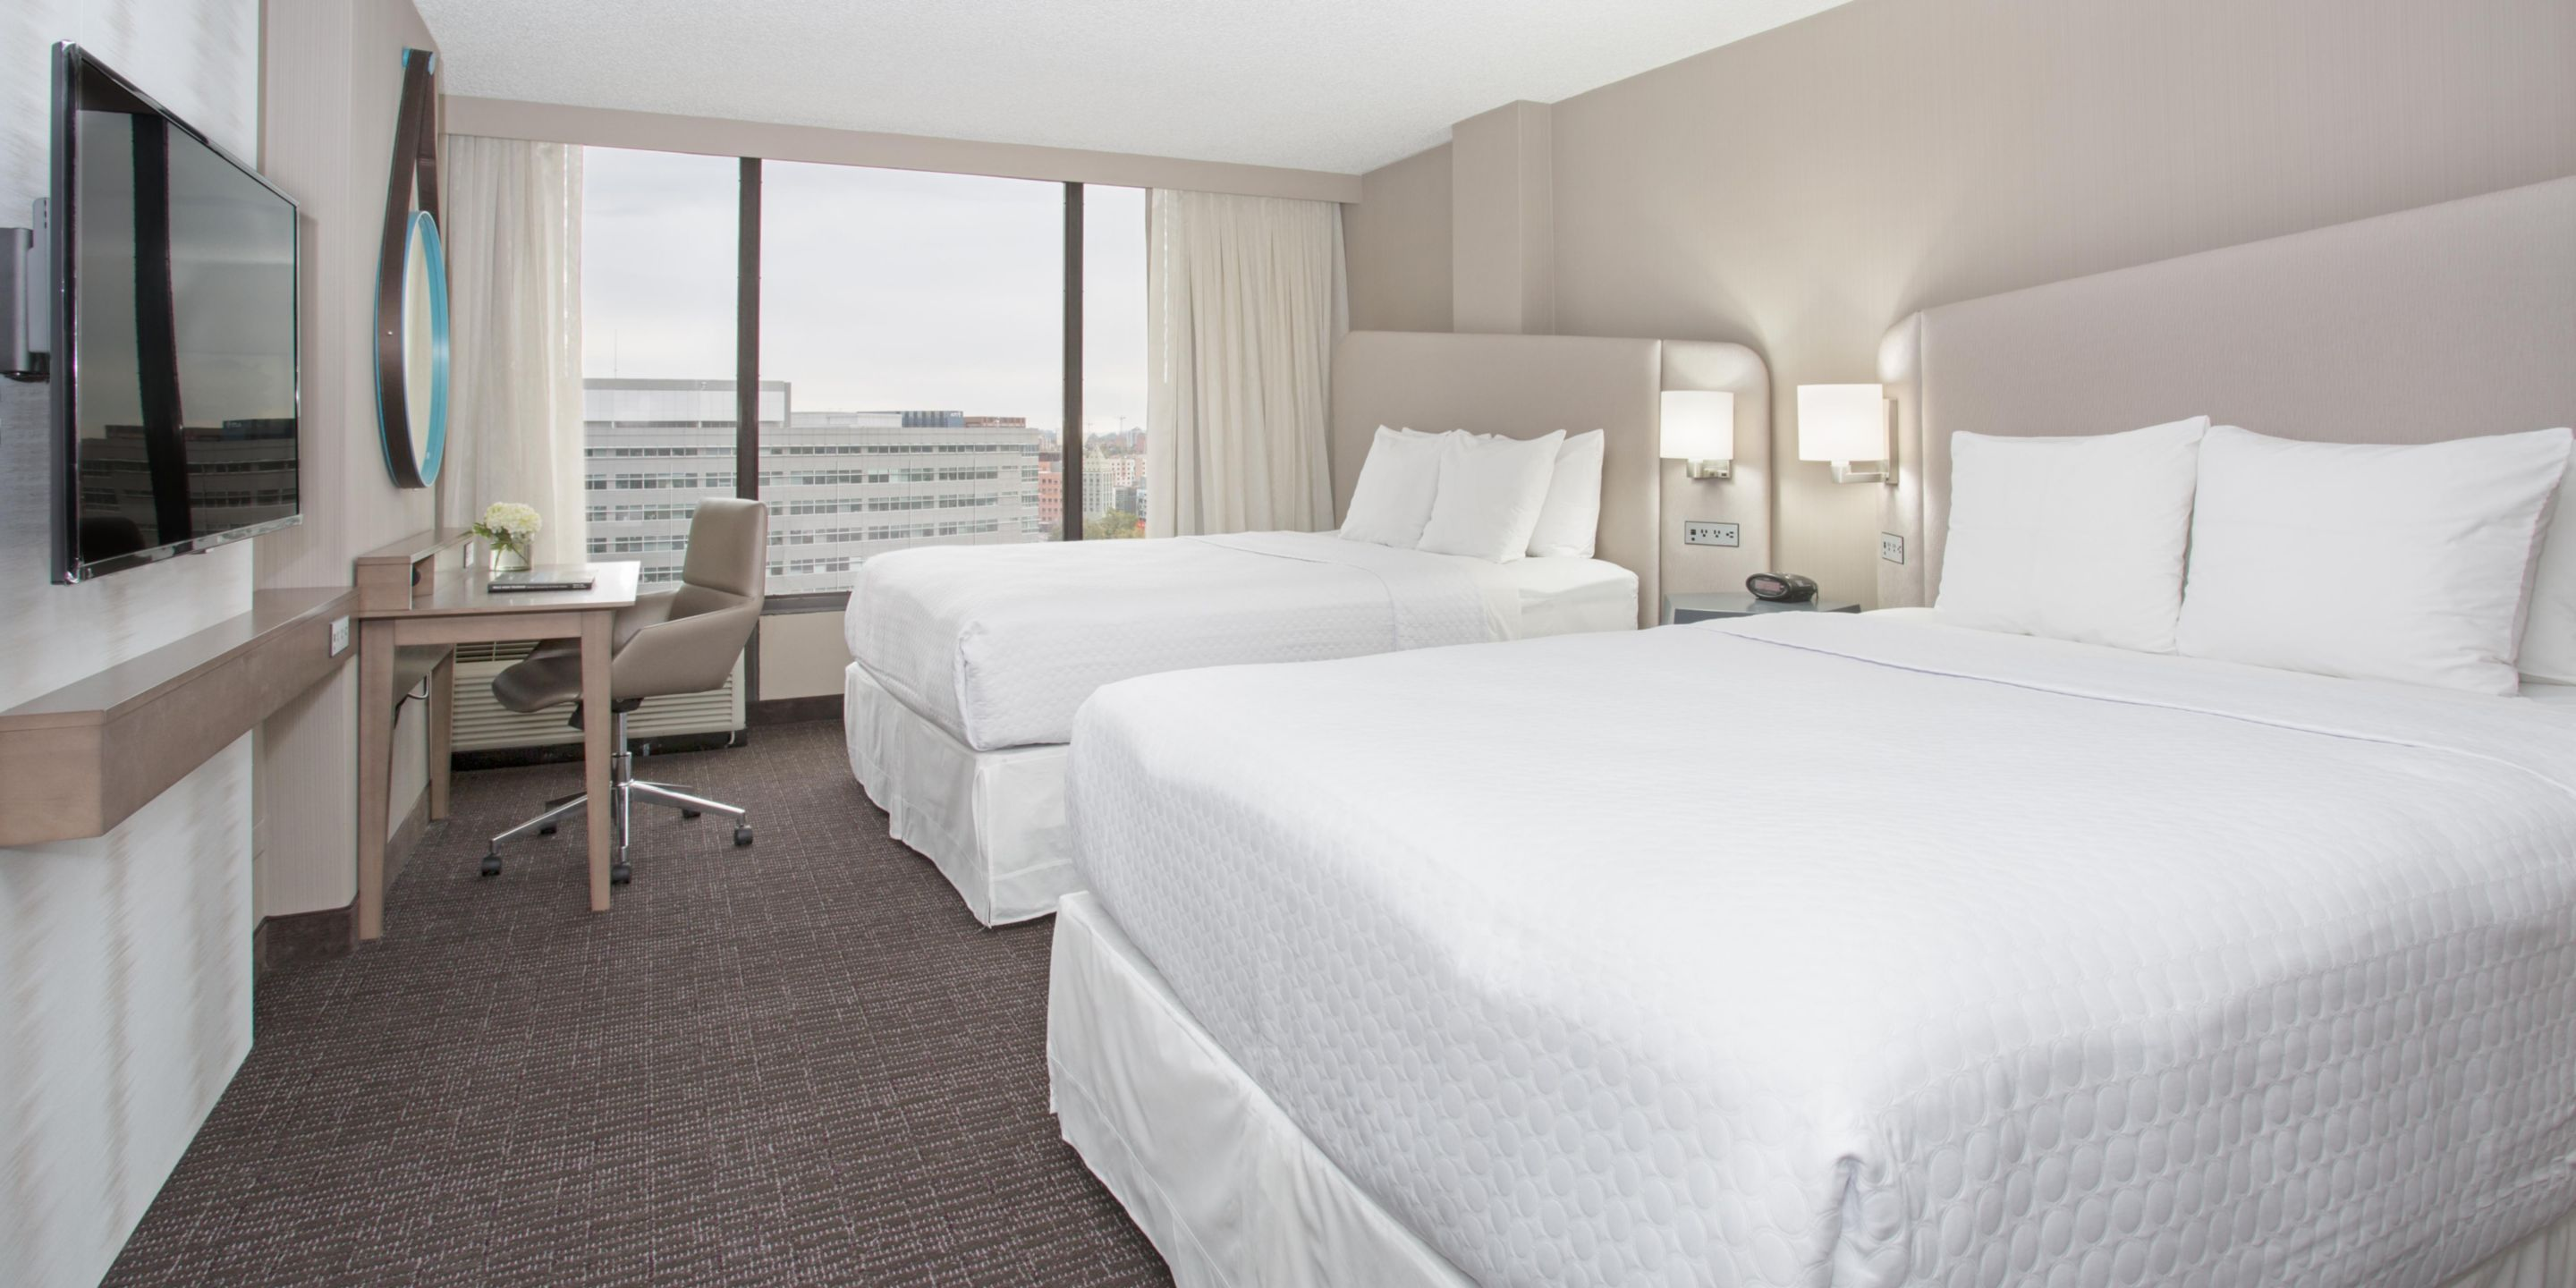 Hotels In Denver My 420 Tours